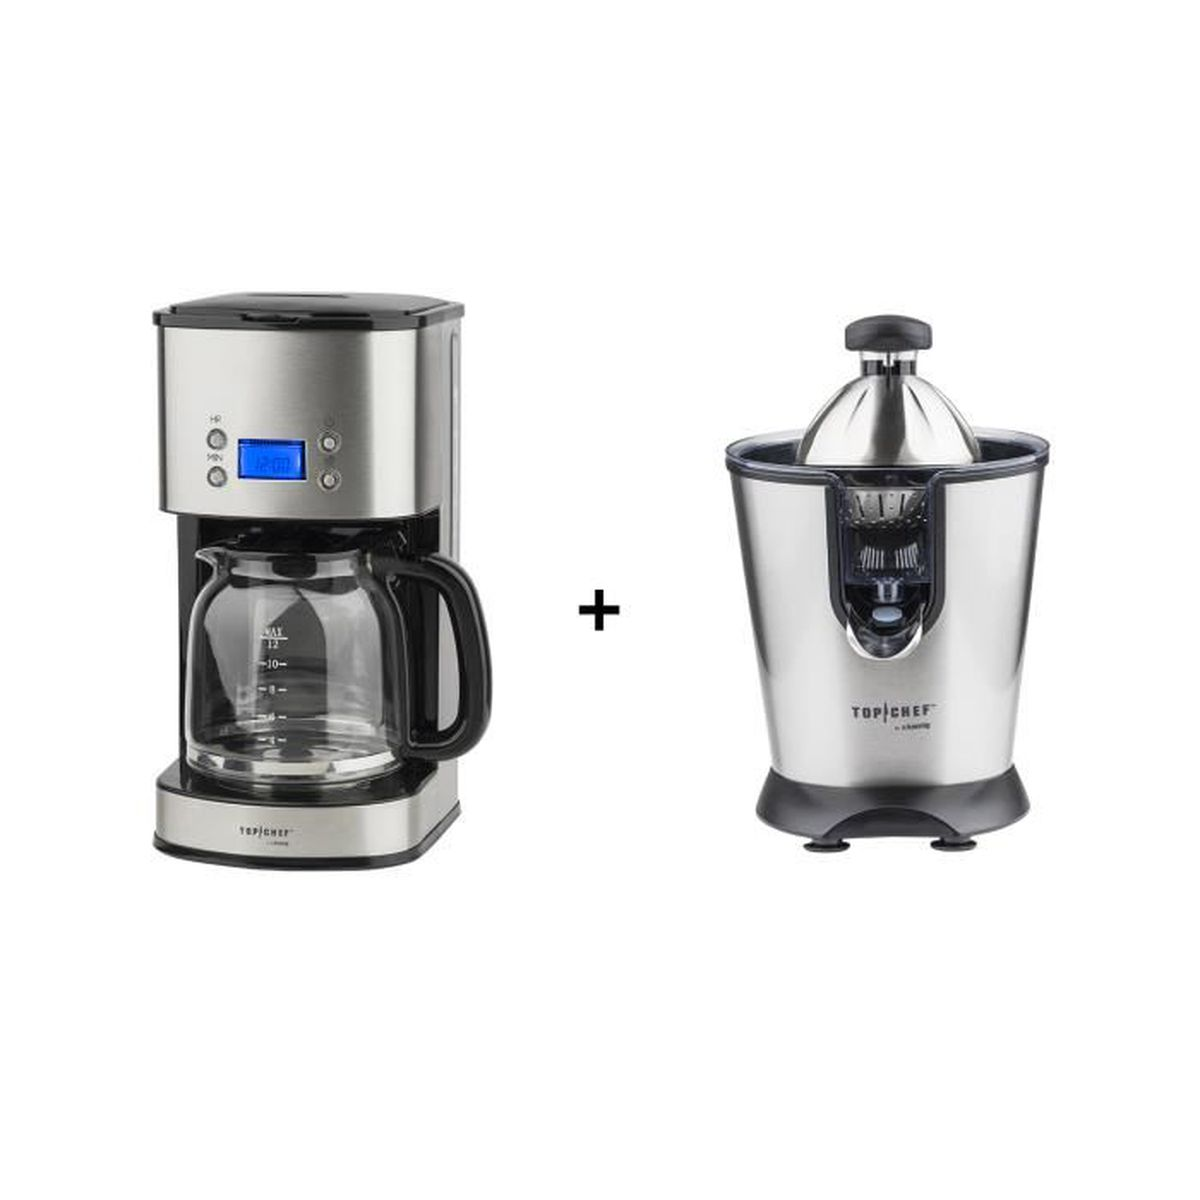 Cafetiere Programmable TassesTopc511 Chef 20 Presse Topc558 Top Agrumes Electrique 12 fy6gbY7